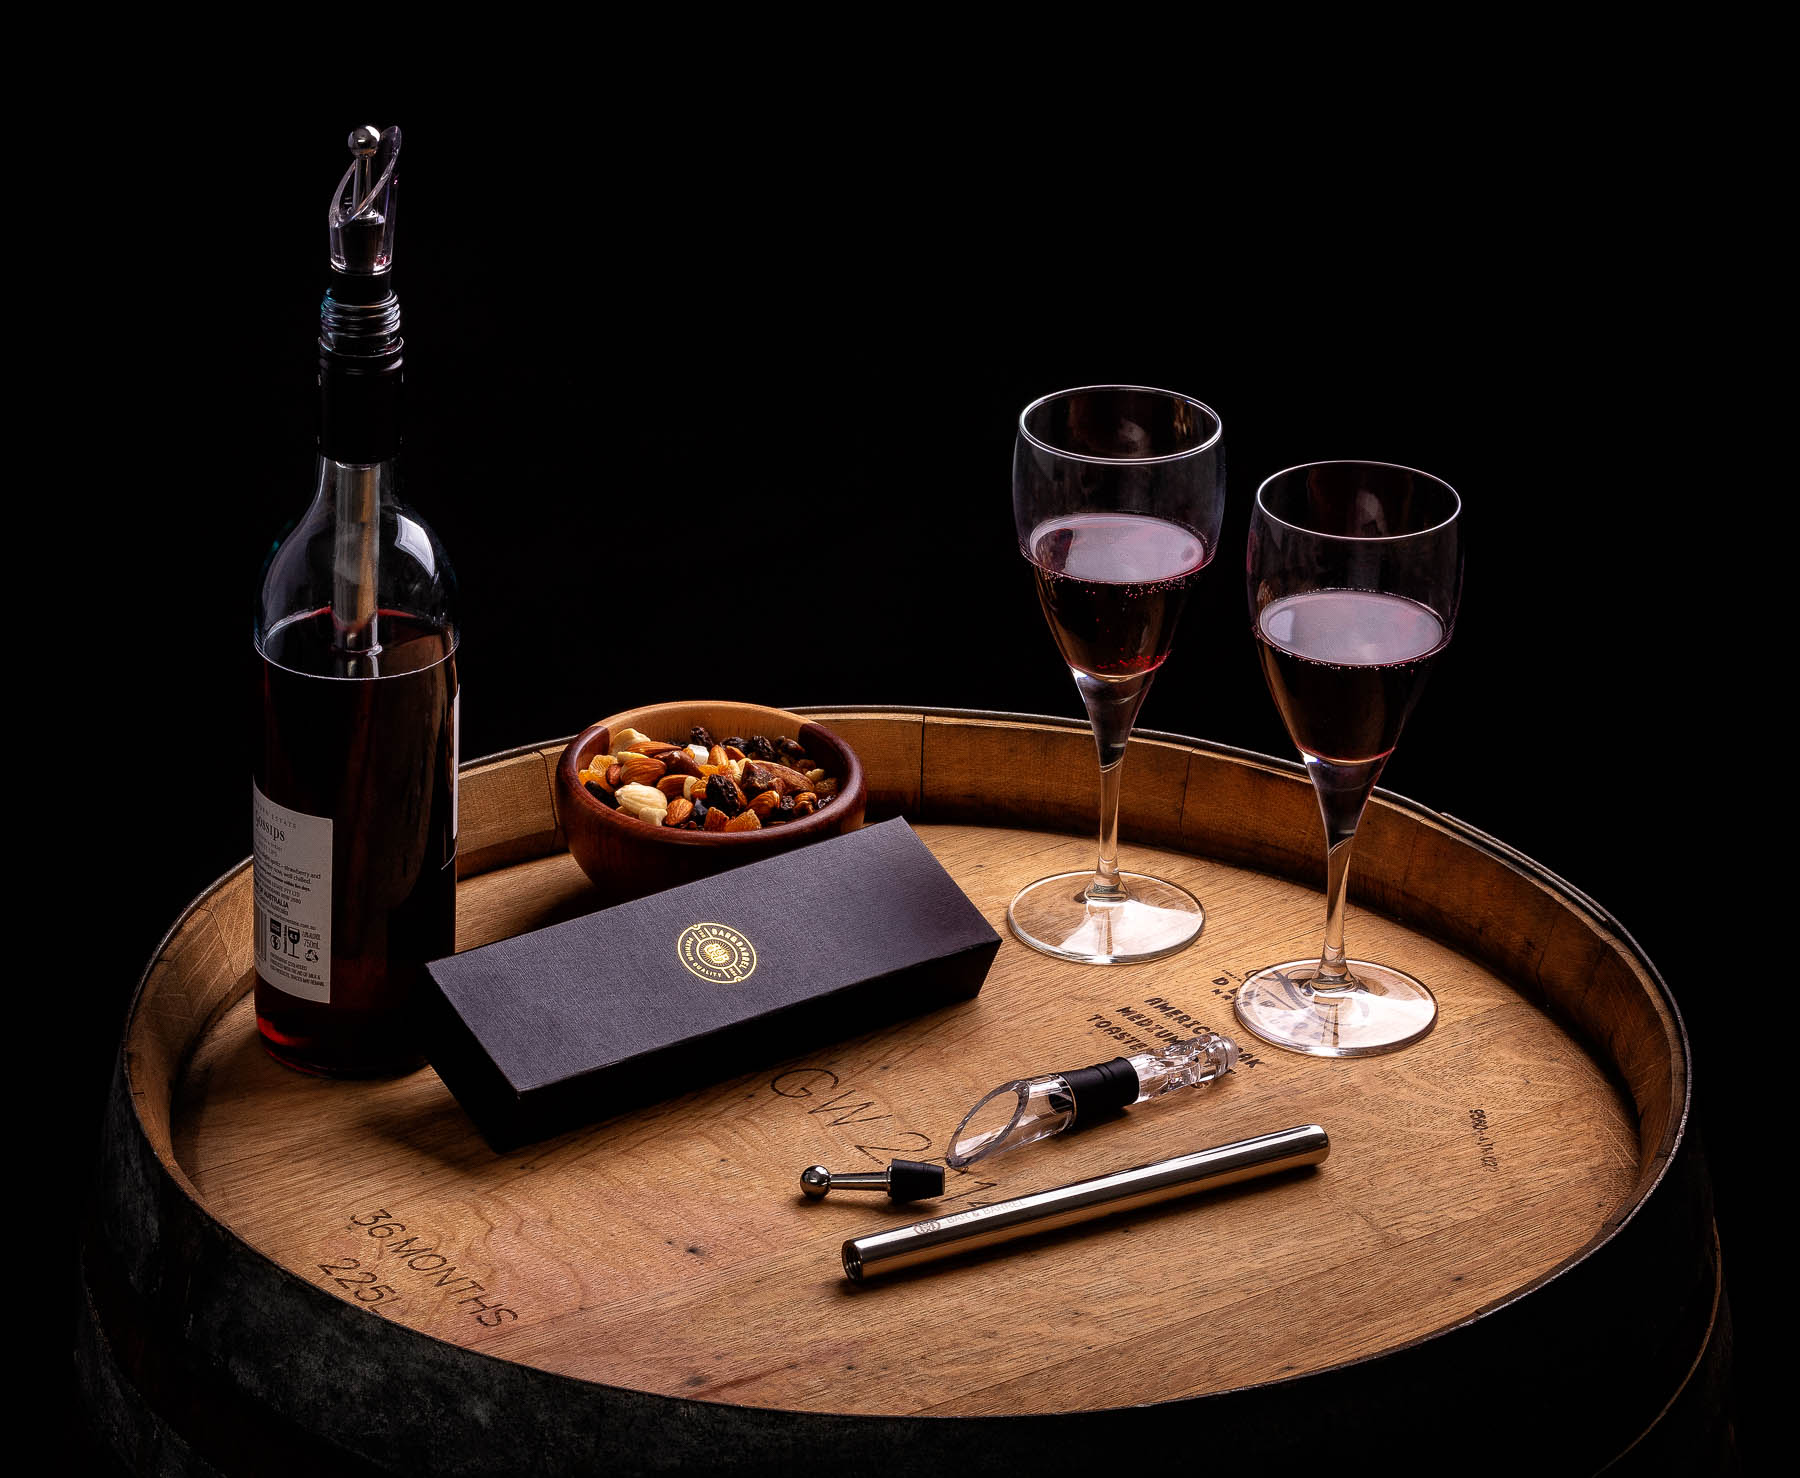 Bar and Barrel Wine stopper Lifestyle product of Barrel for Amazon e-commerce